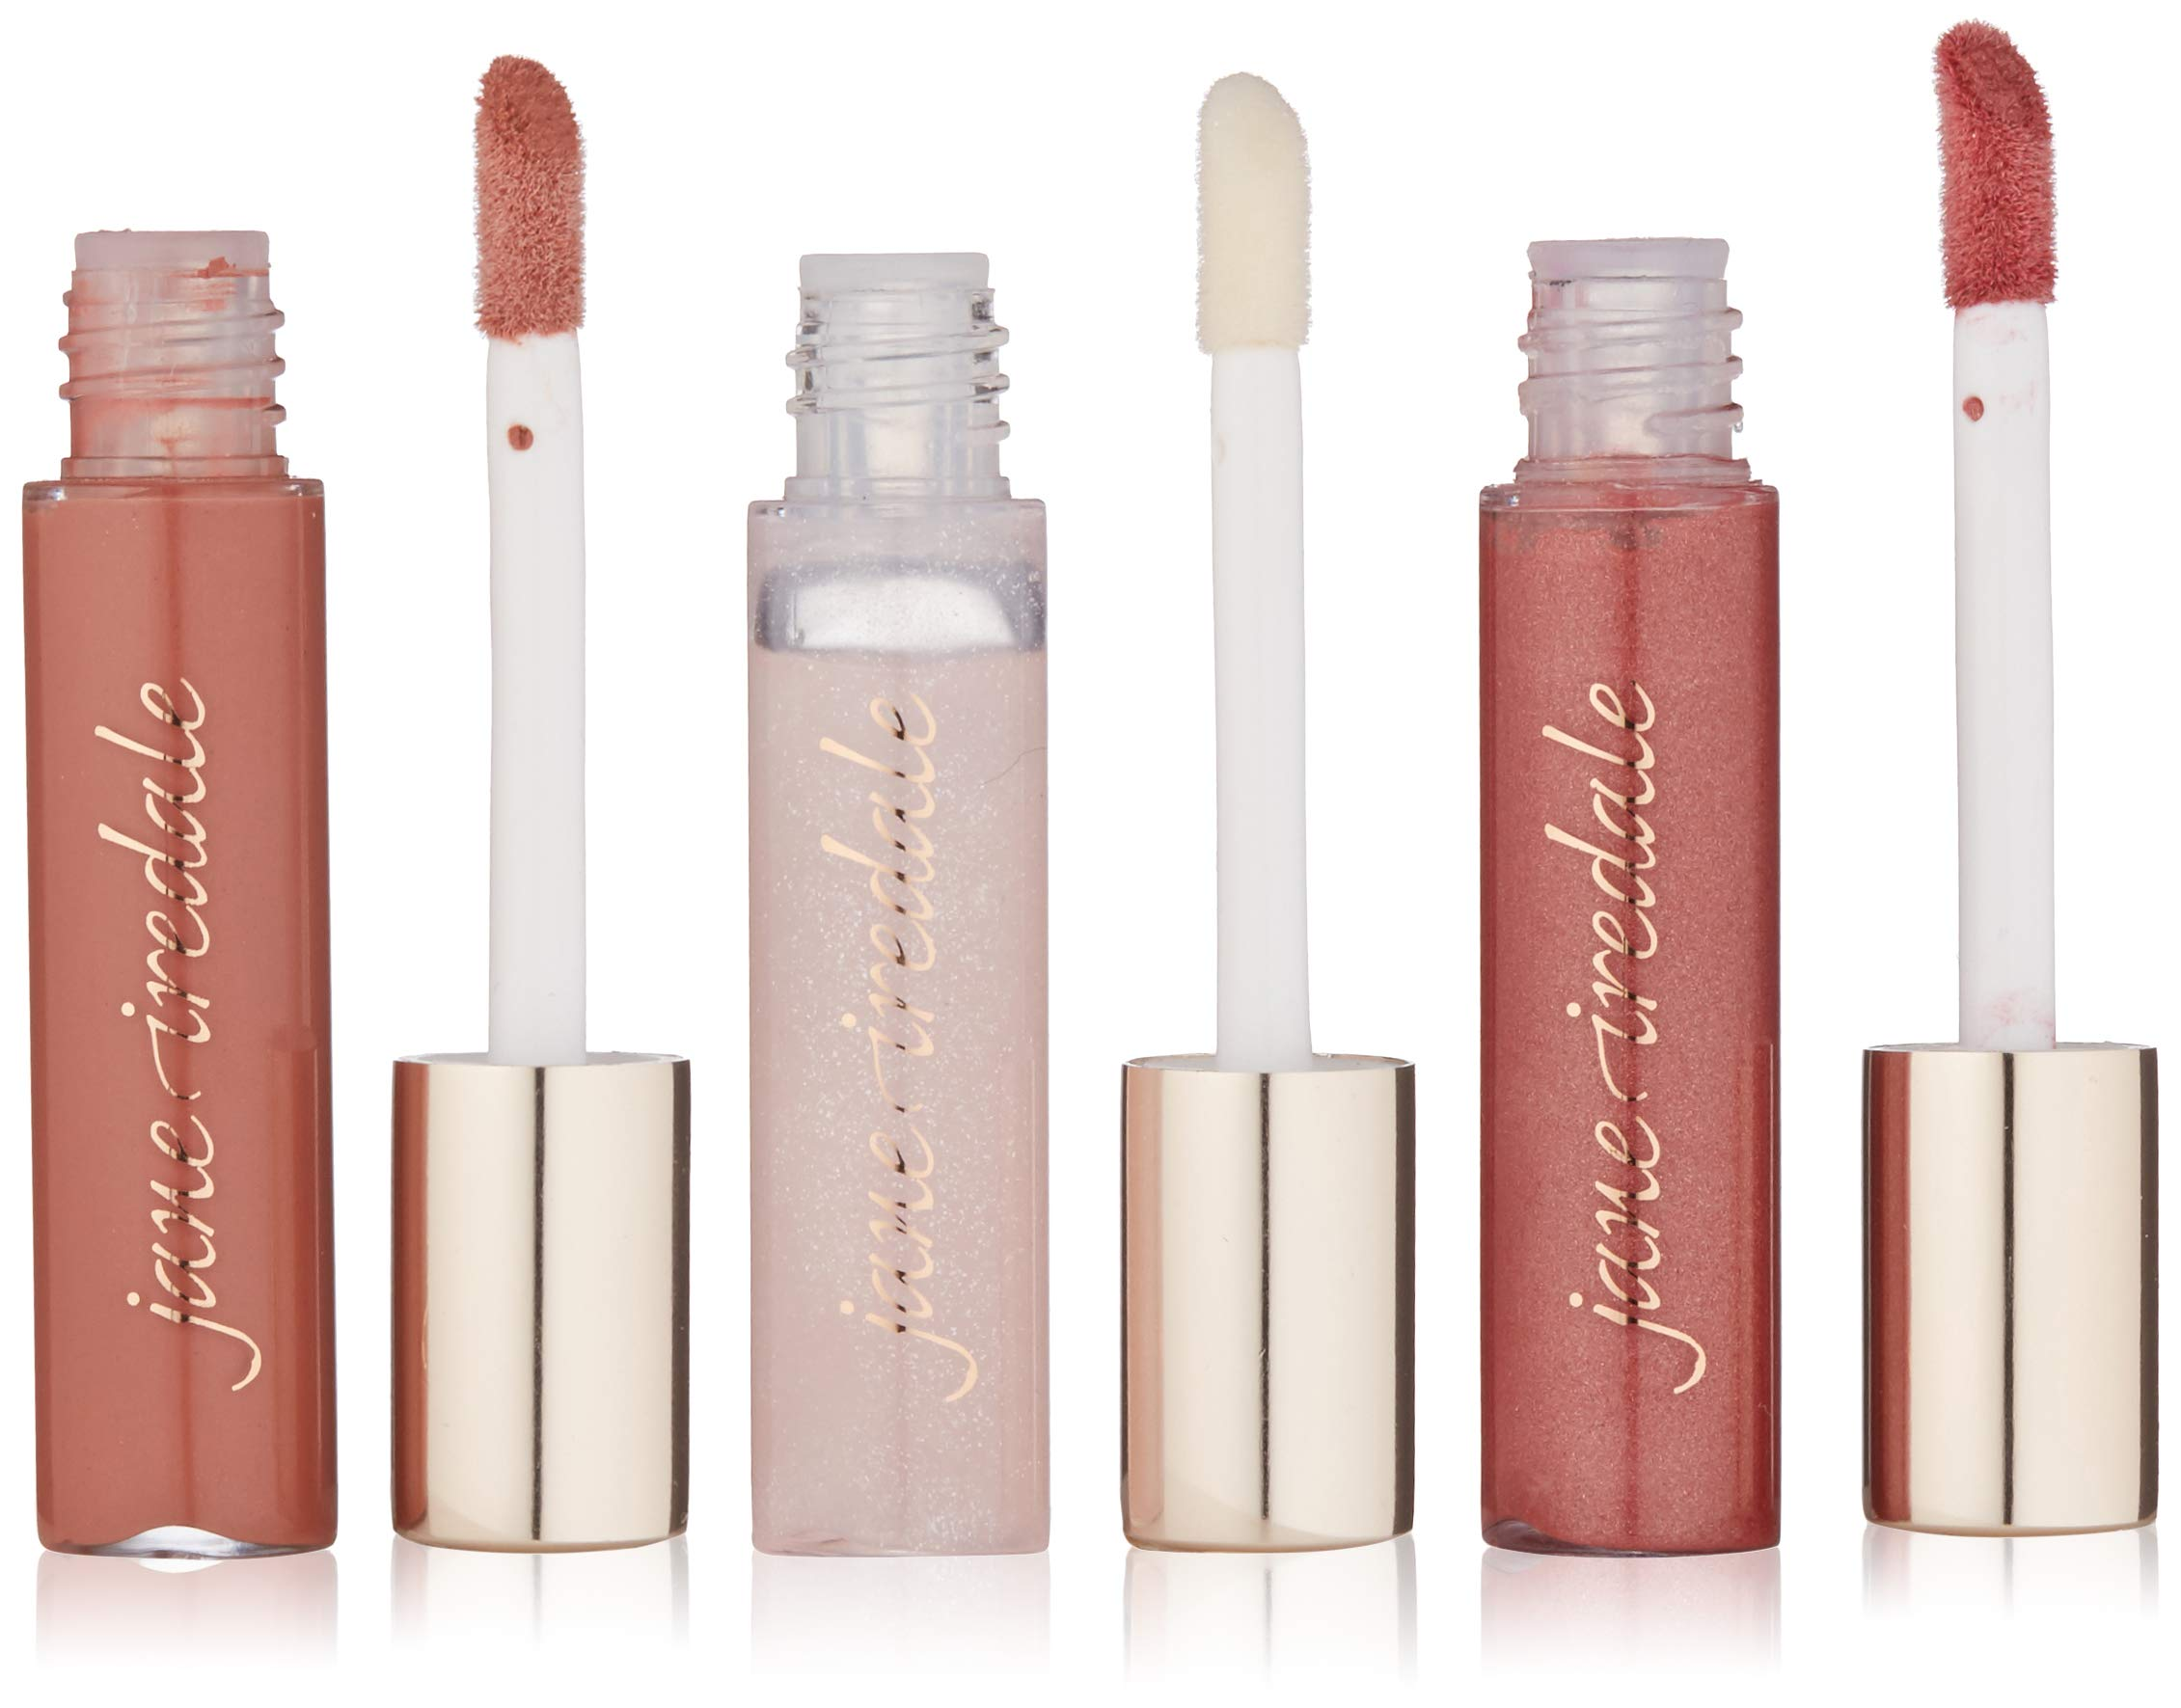 jane iredale Limited Edition Kiss and Tell Lip Stain/Gloss Kit by jane iredale